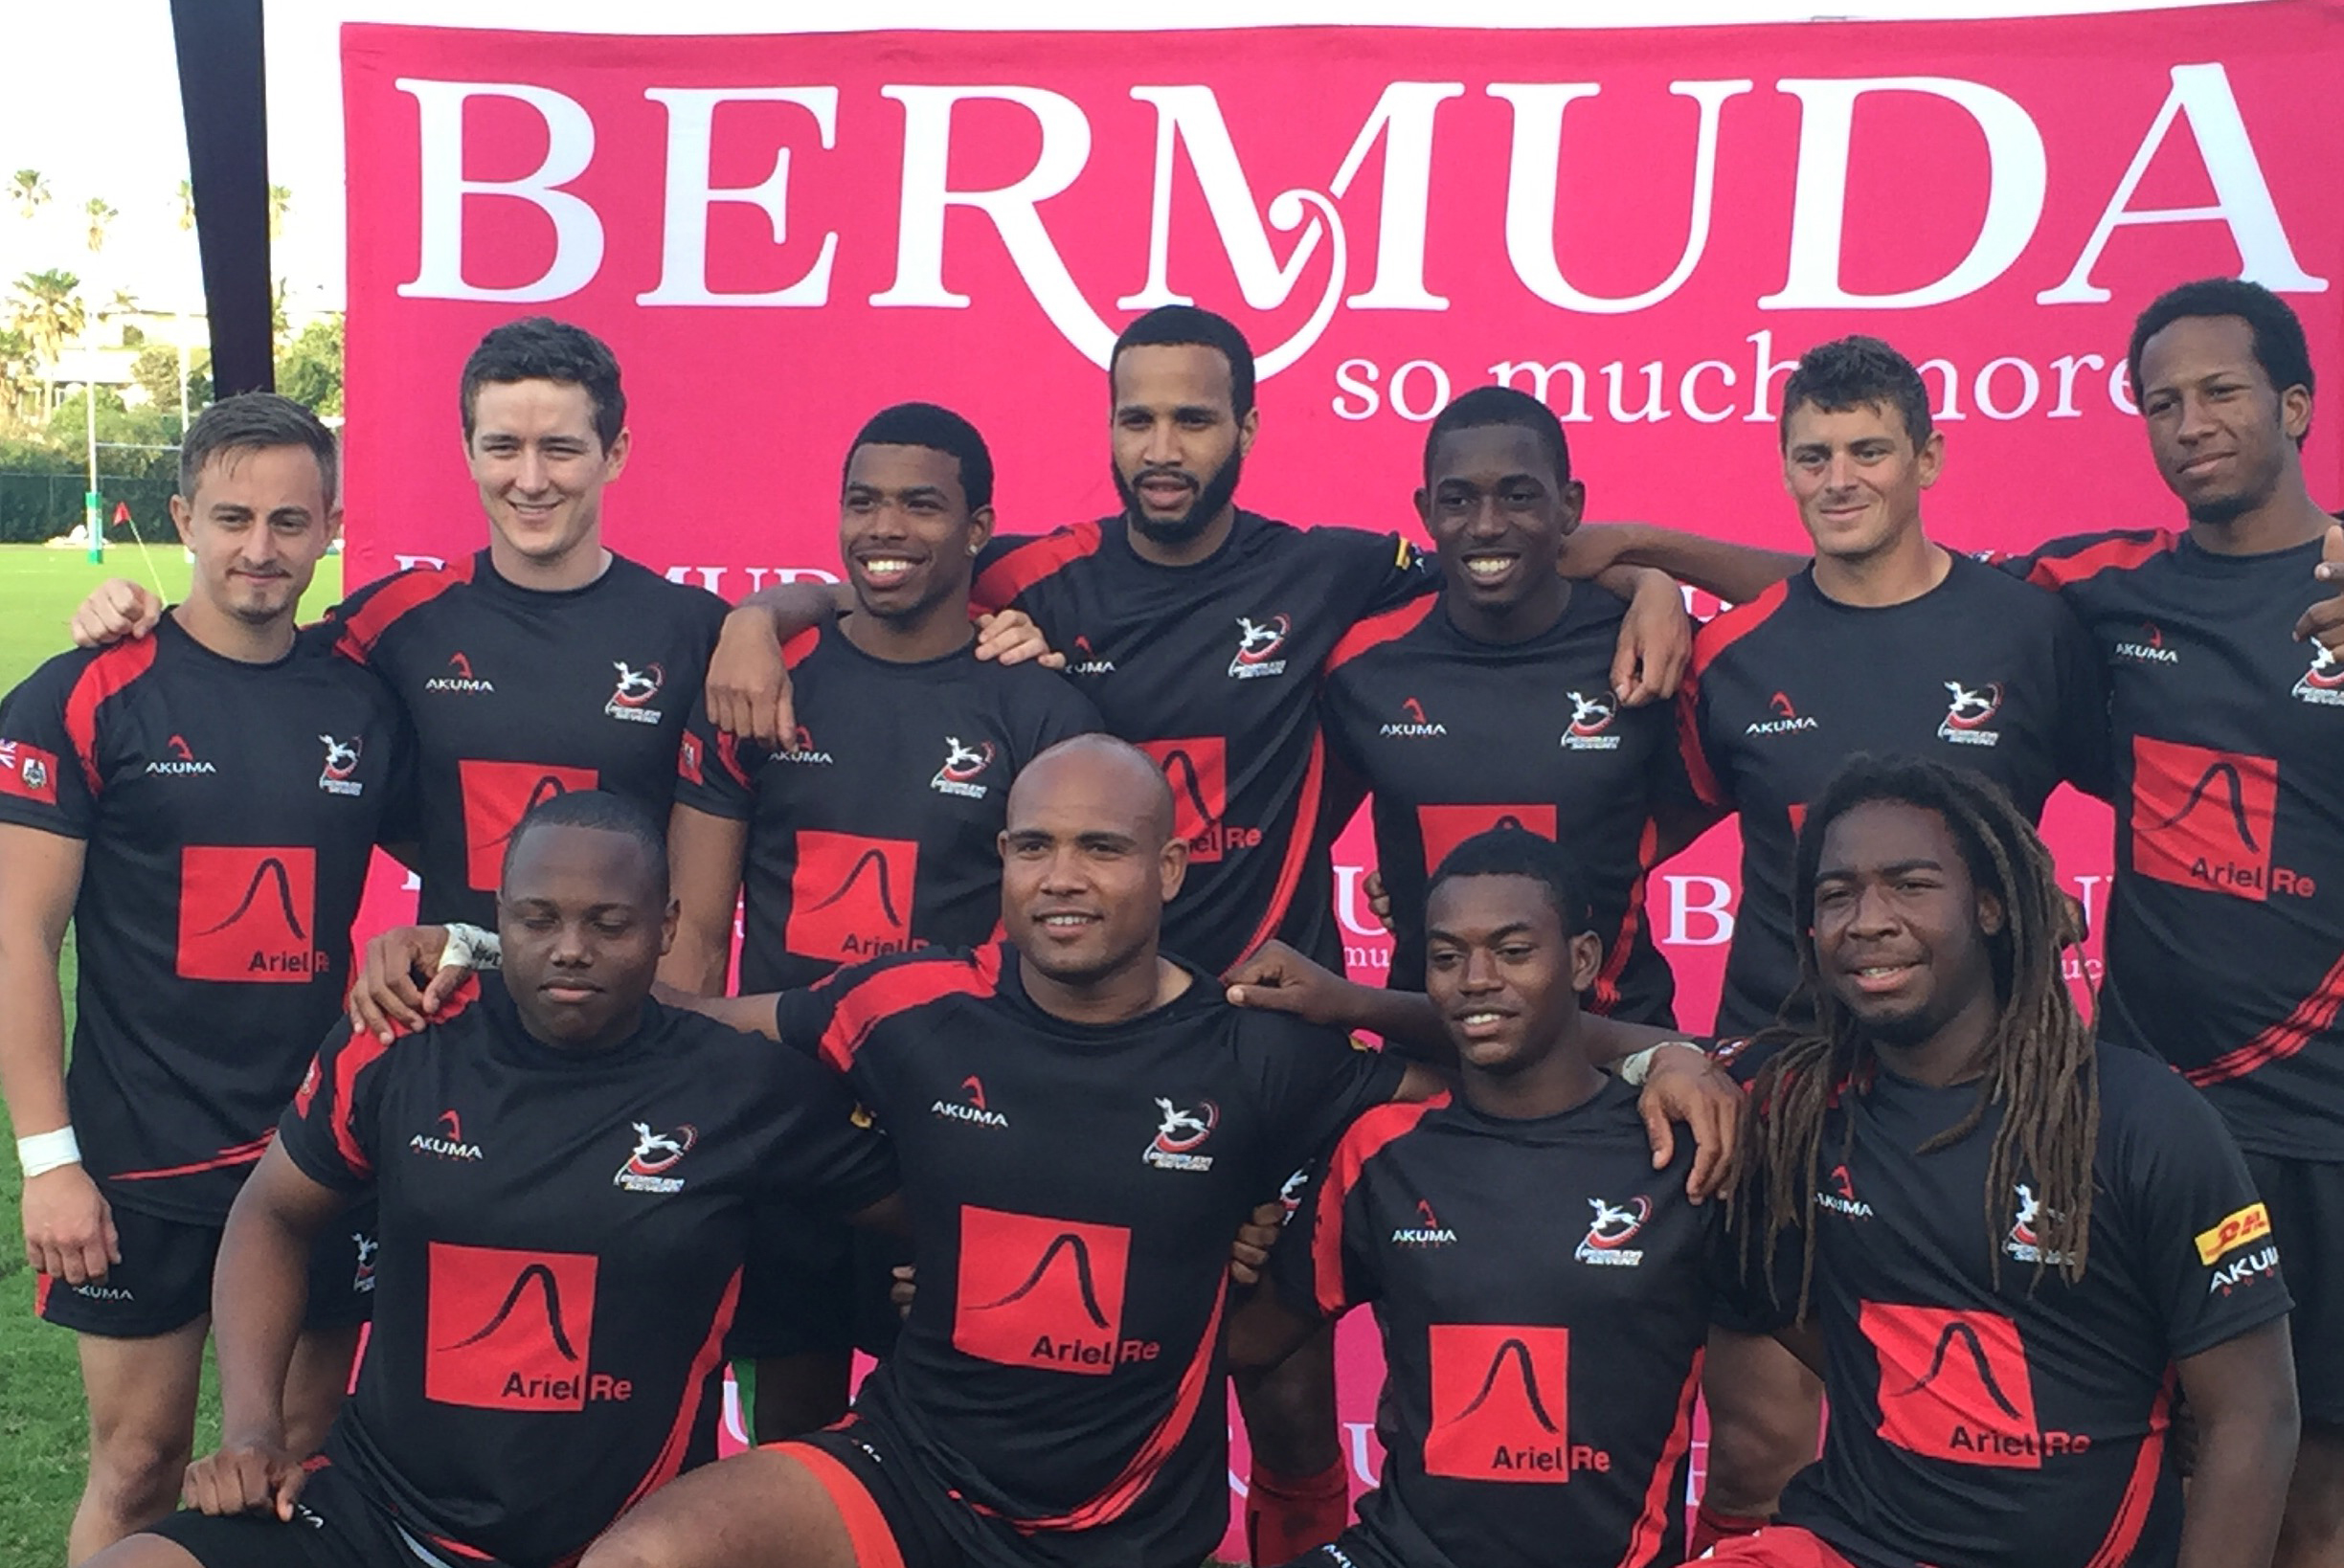 Bermuda All Star 7s team - the OAPs